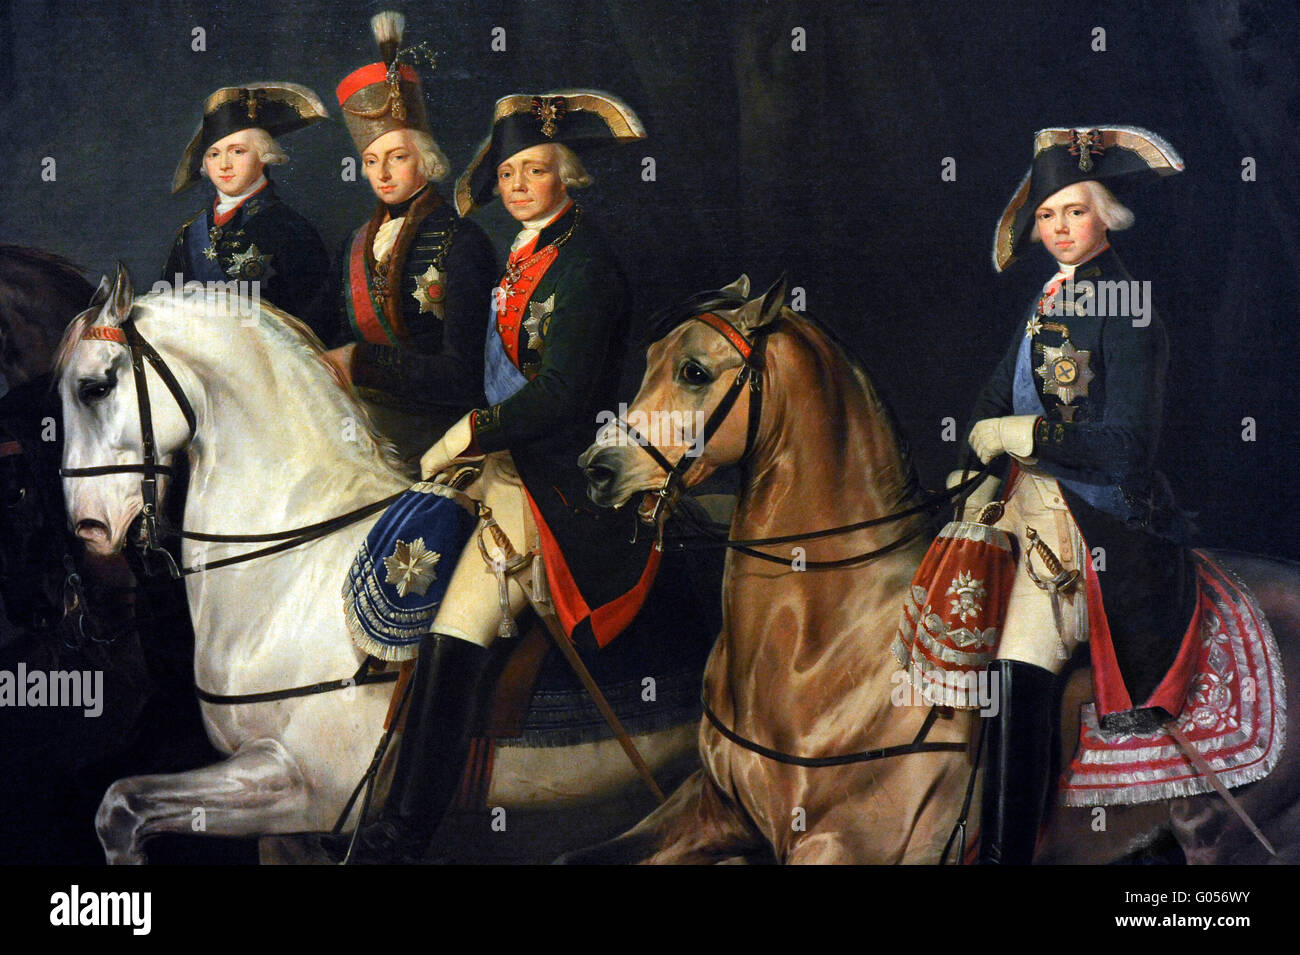 Portrait of Paul I with the Grand Dukes Alexandre Pavlovich, Konstantin Pavlovich and Palatine Stephen of Hungry. - Stock Image